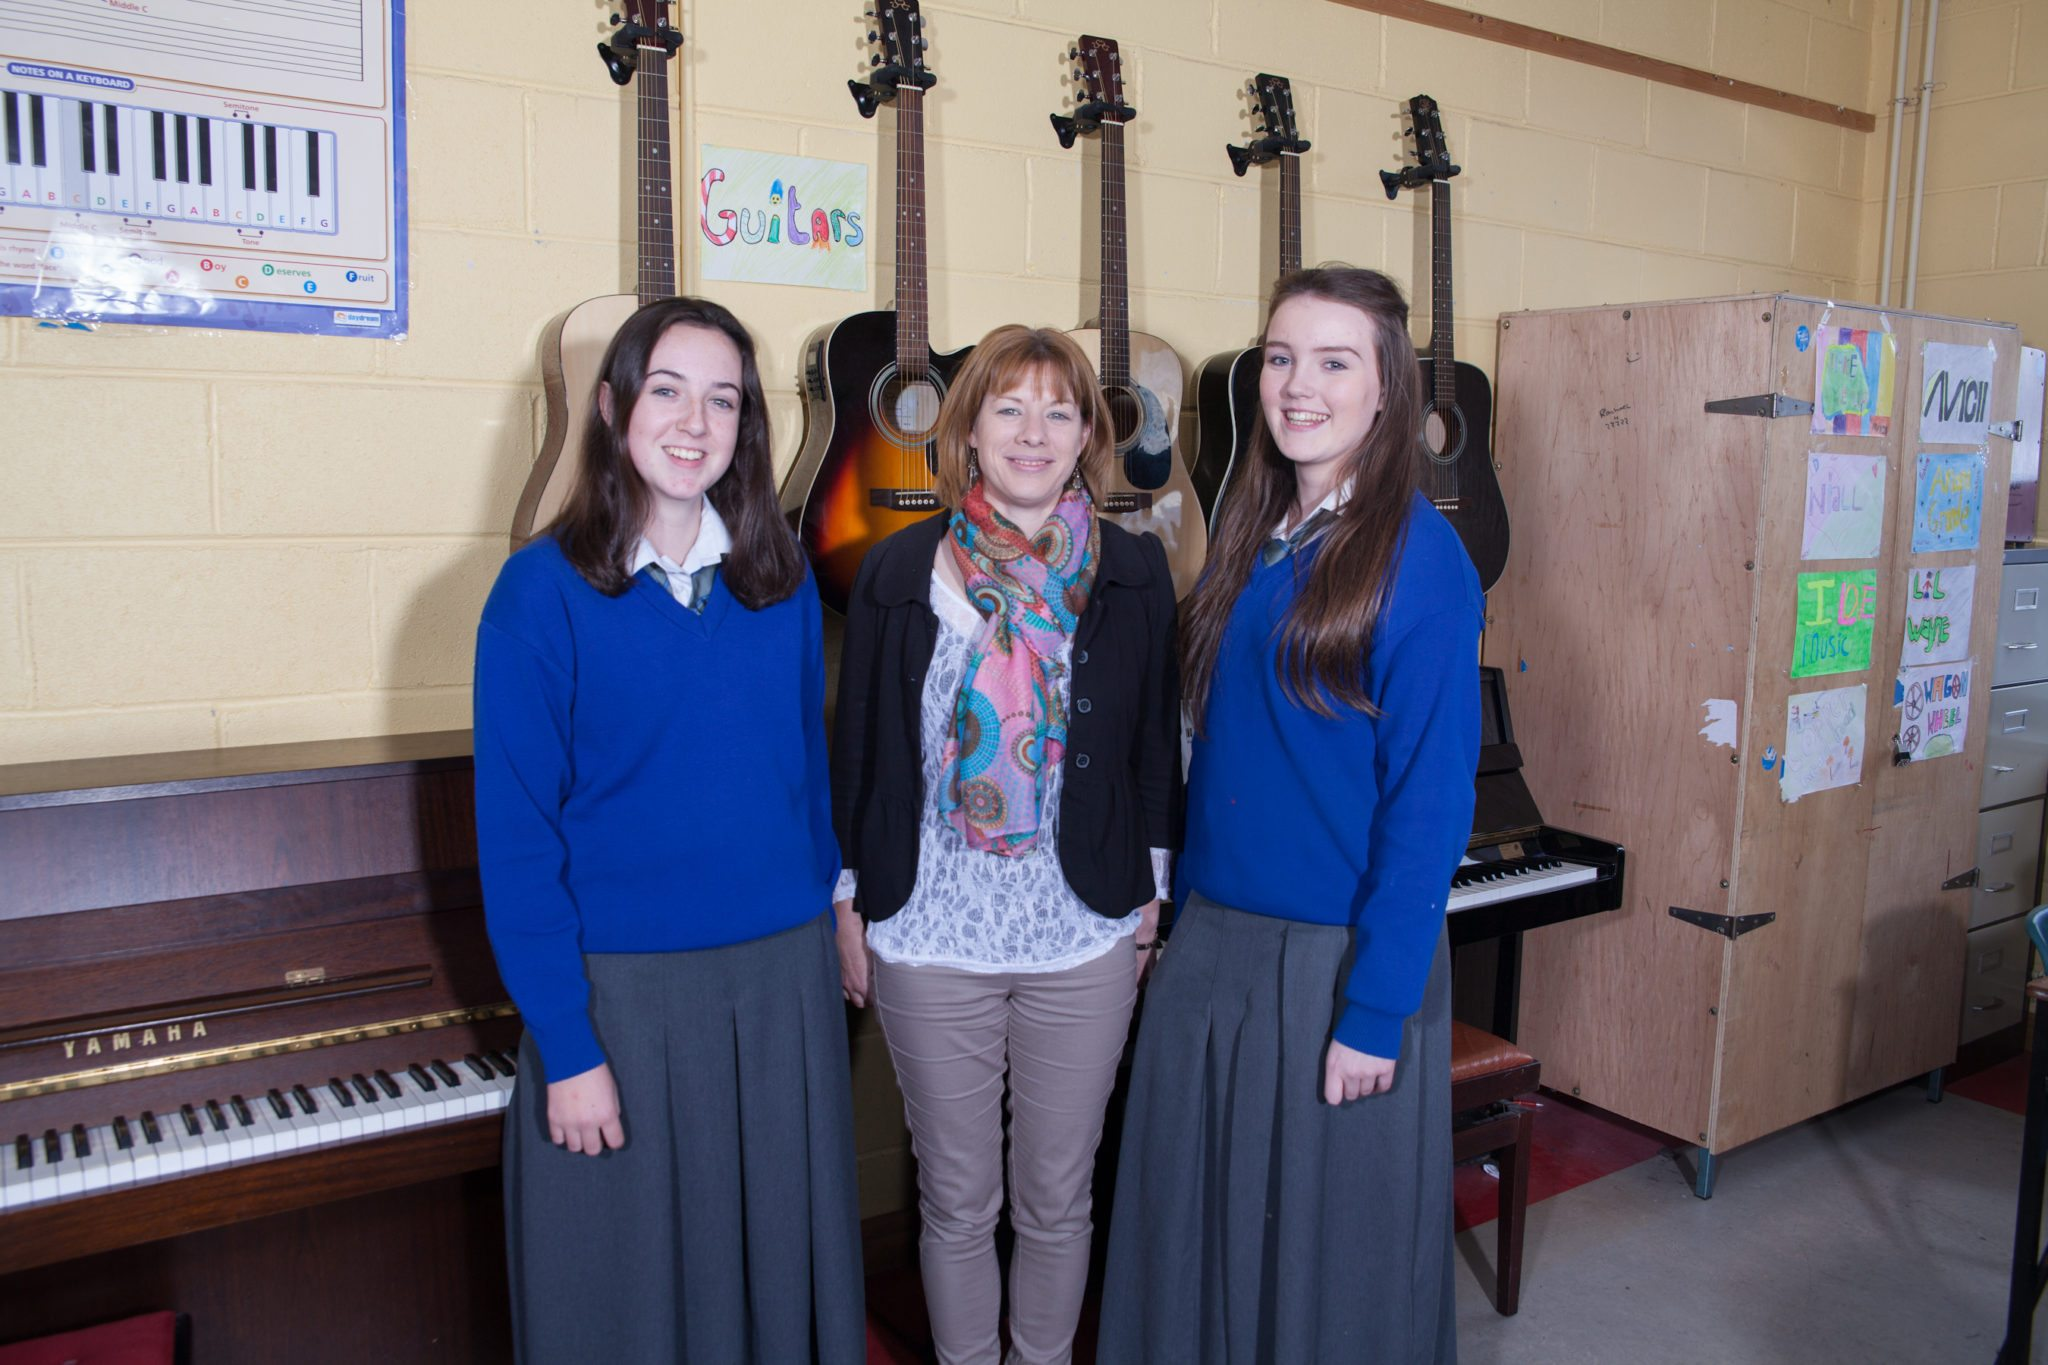 Music in Desmond College